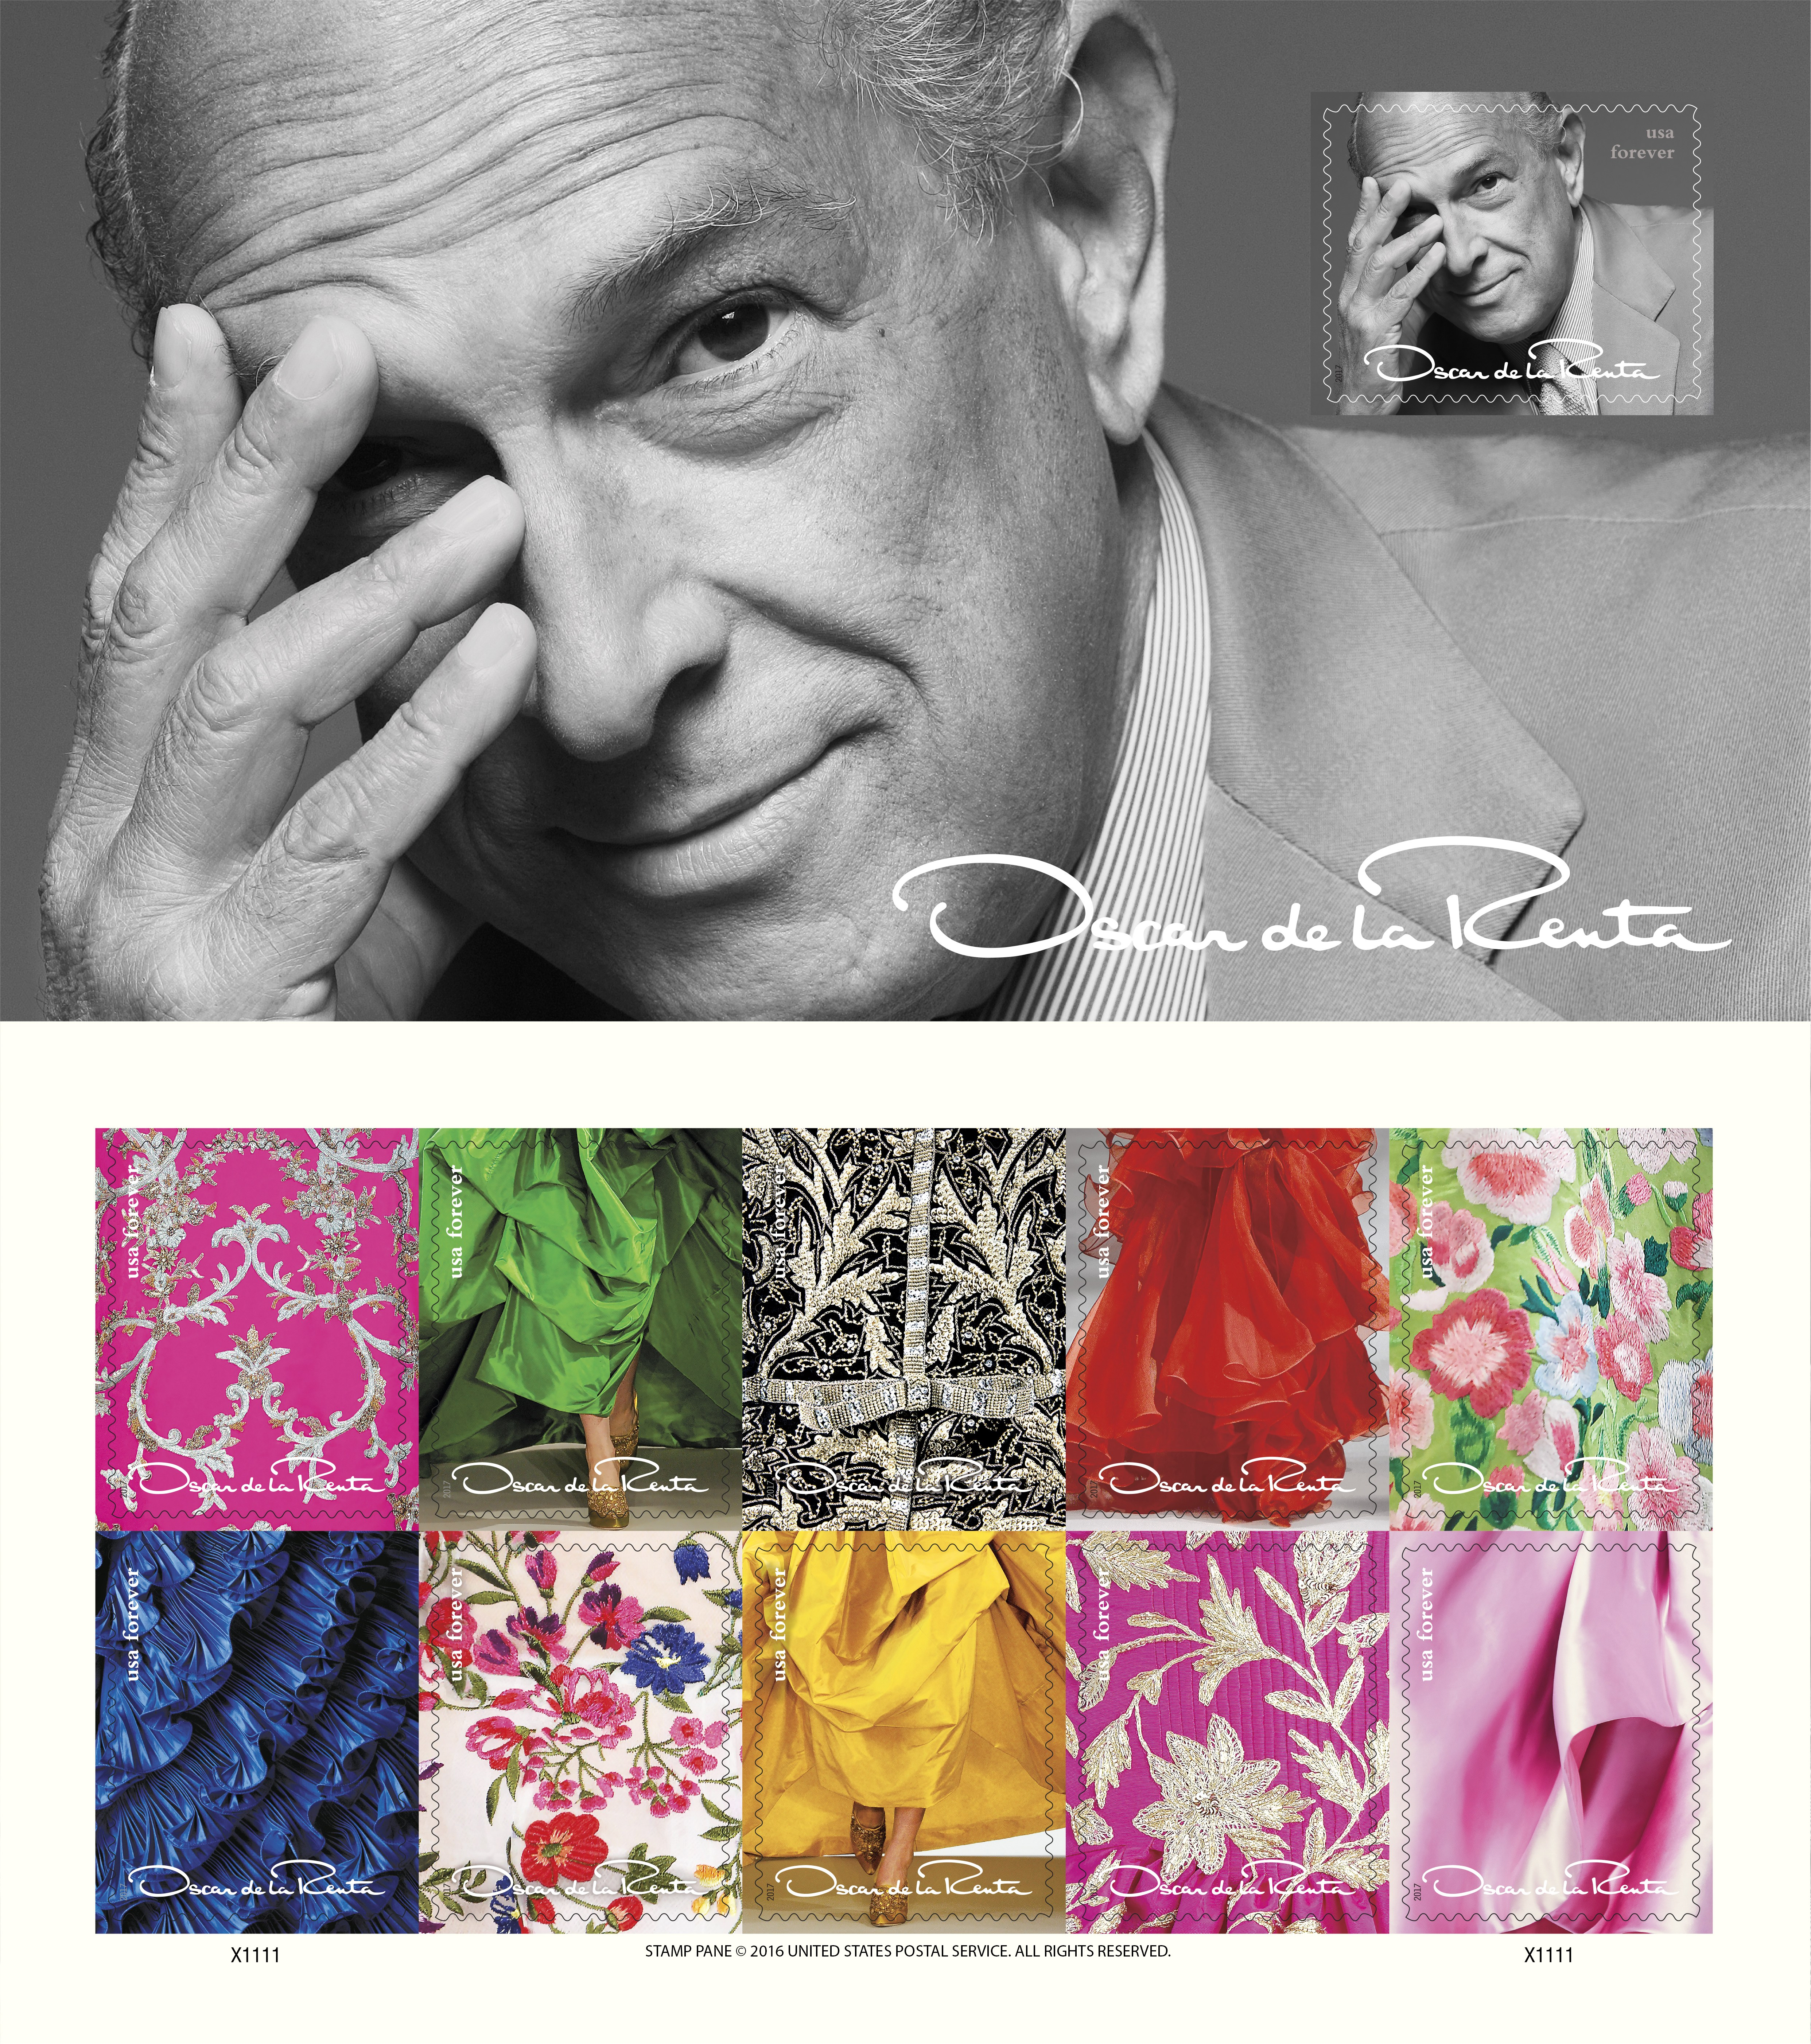 Oscar de la Renta honored with forever stamps